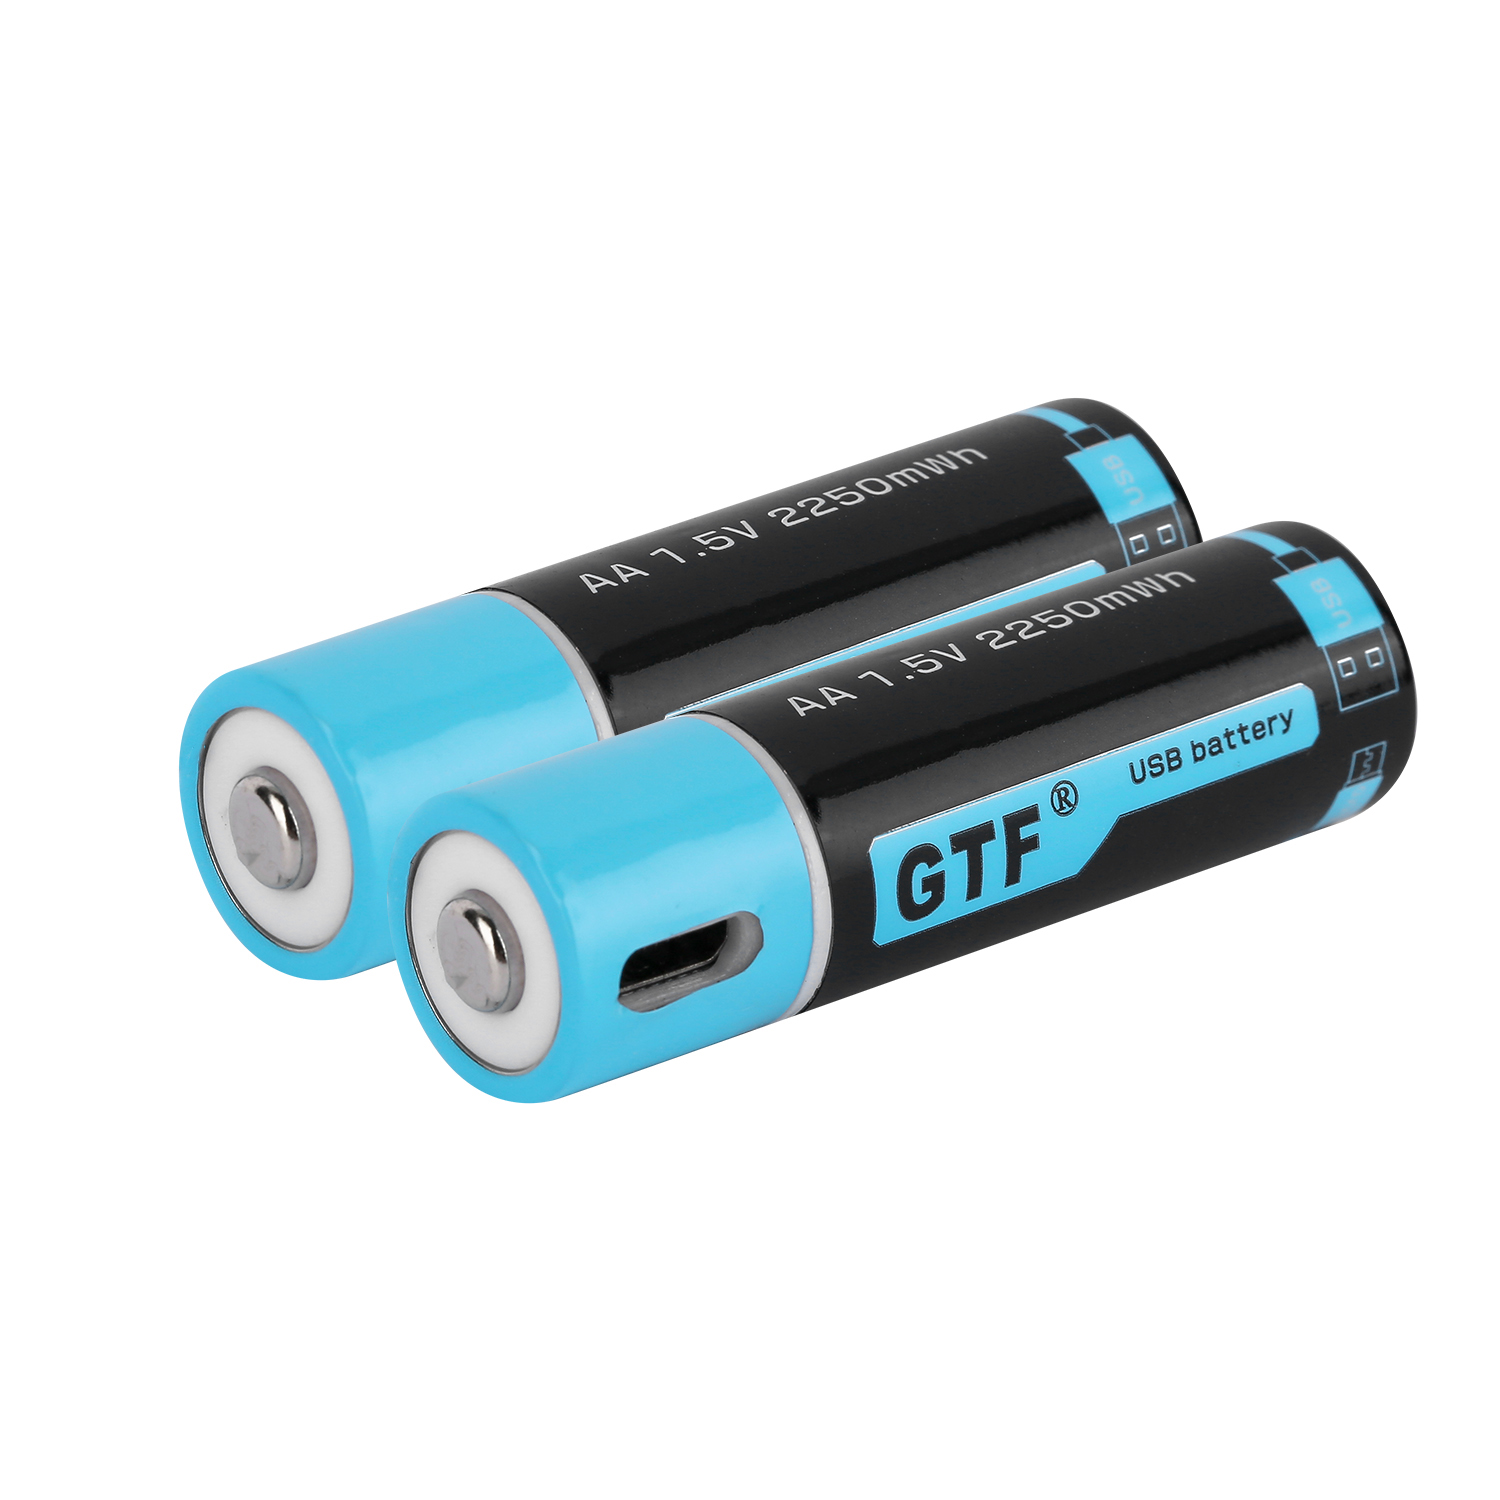 USB Rechargeable AA Battery 1500mAh 1.5v Quick Charging Lithium Battery 2PCS